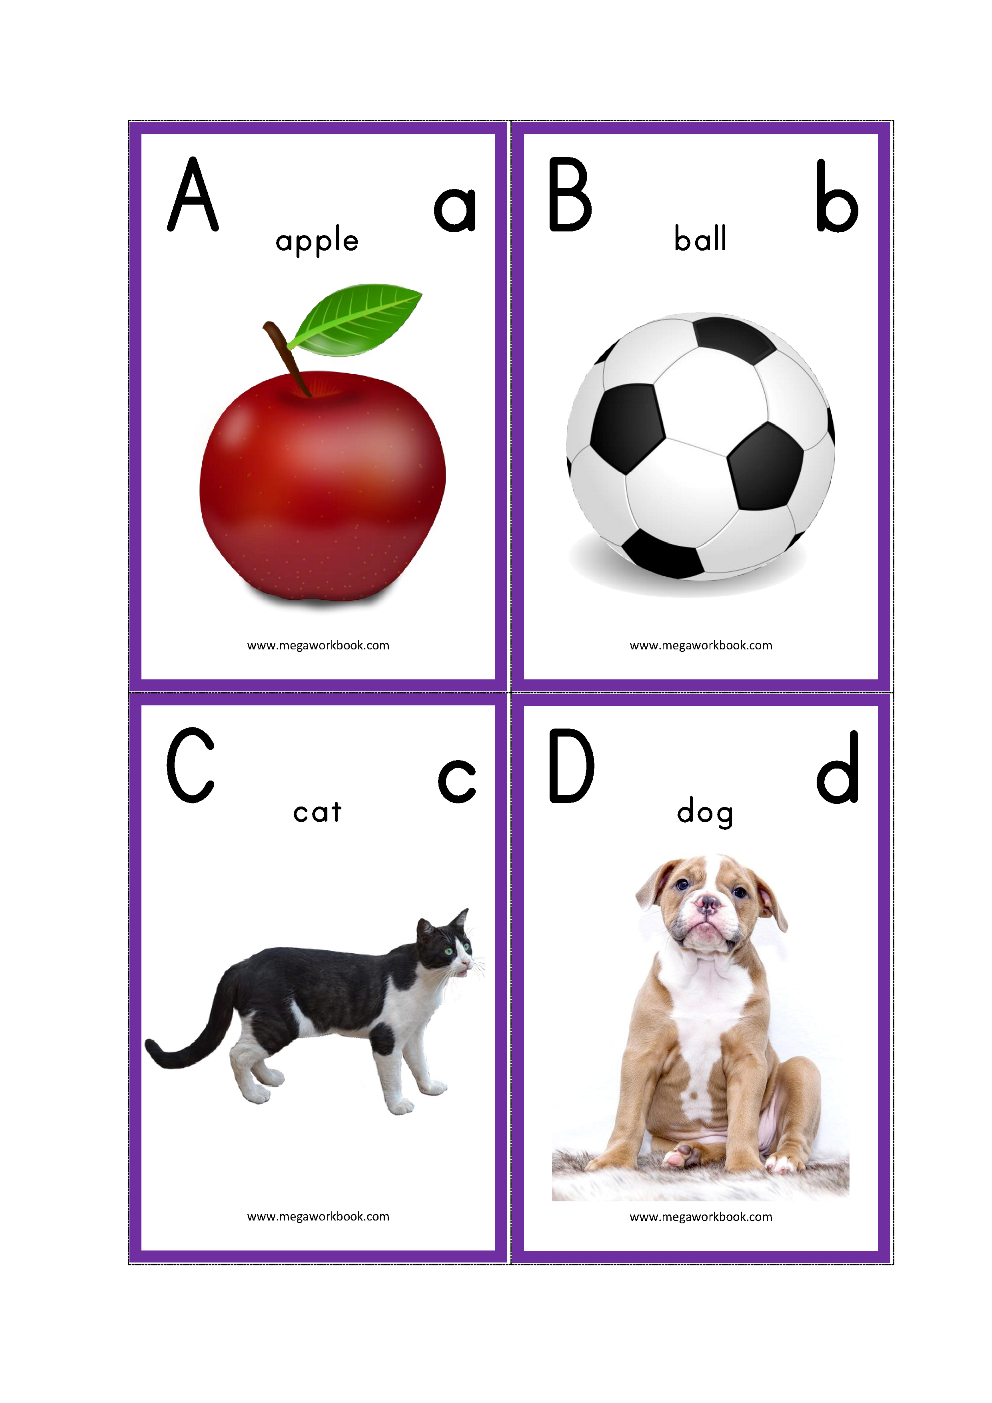 Alphabet Flash Cards - Abc Flash Cards - Letters With Pictures - Free Printable Abc Flashcards With Pictures